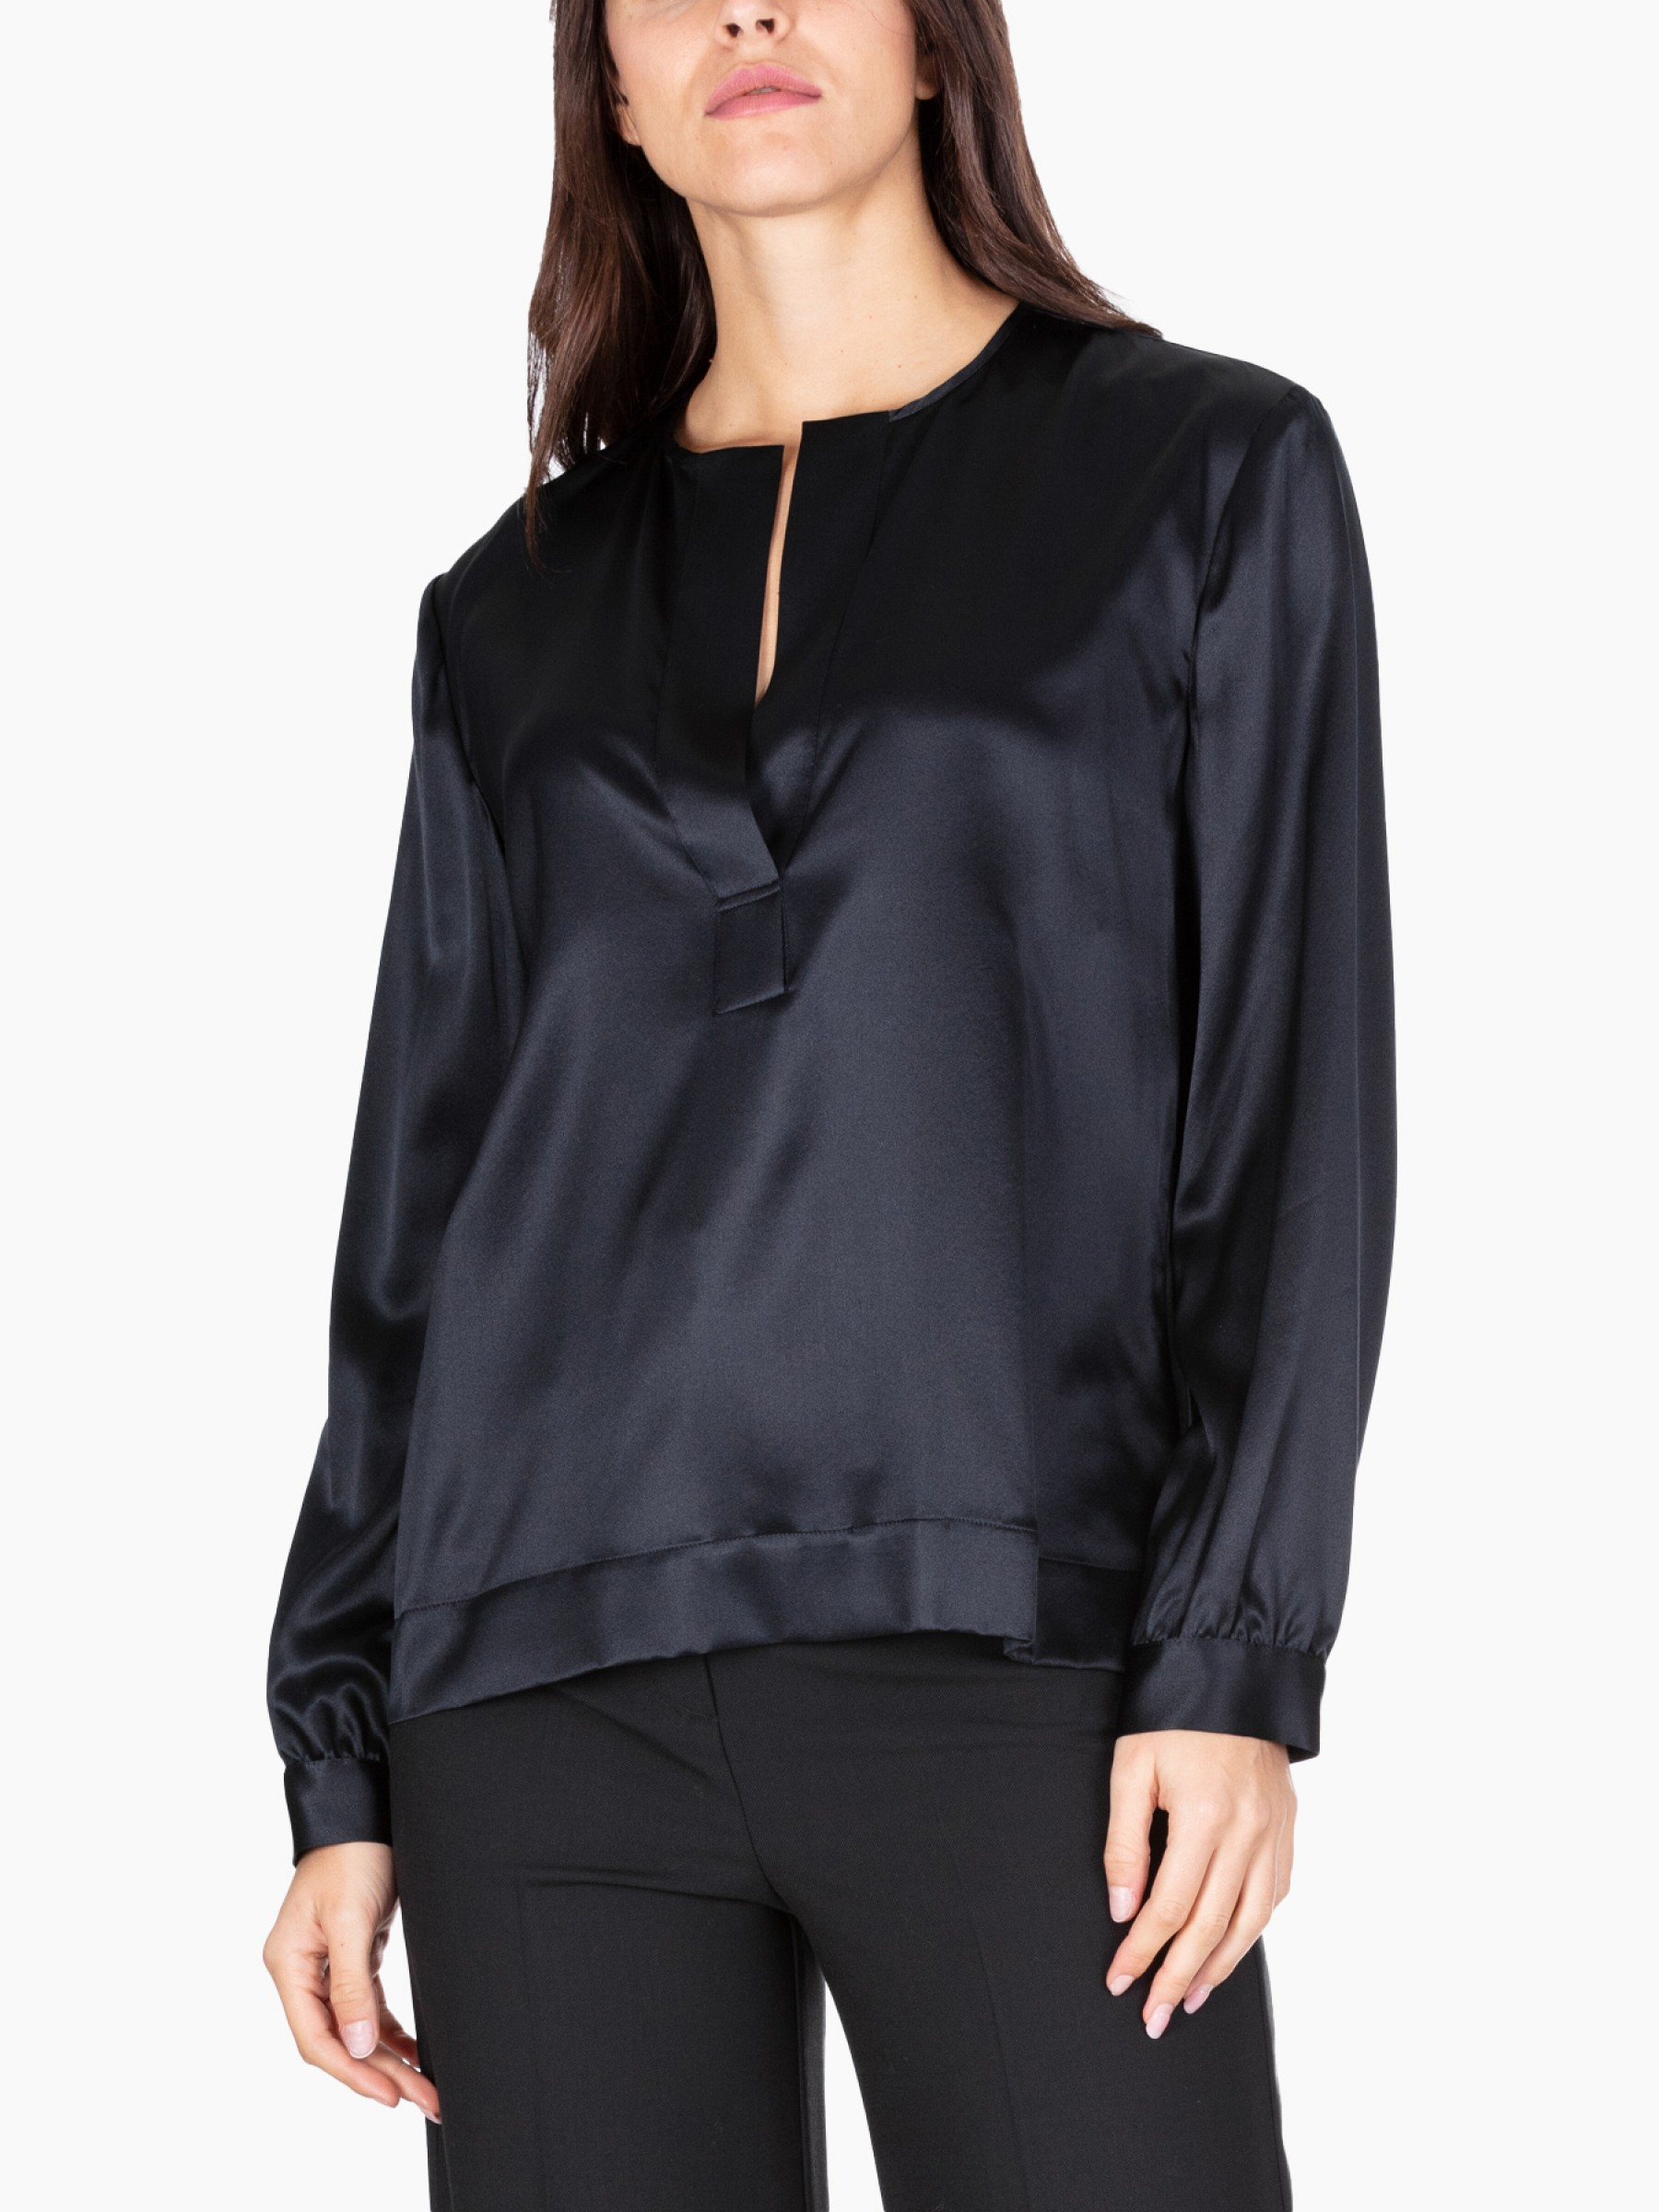 Kaos Blusa in seta stretch AI2020 MI1NT004-0001-NERO